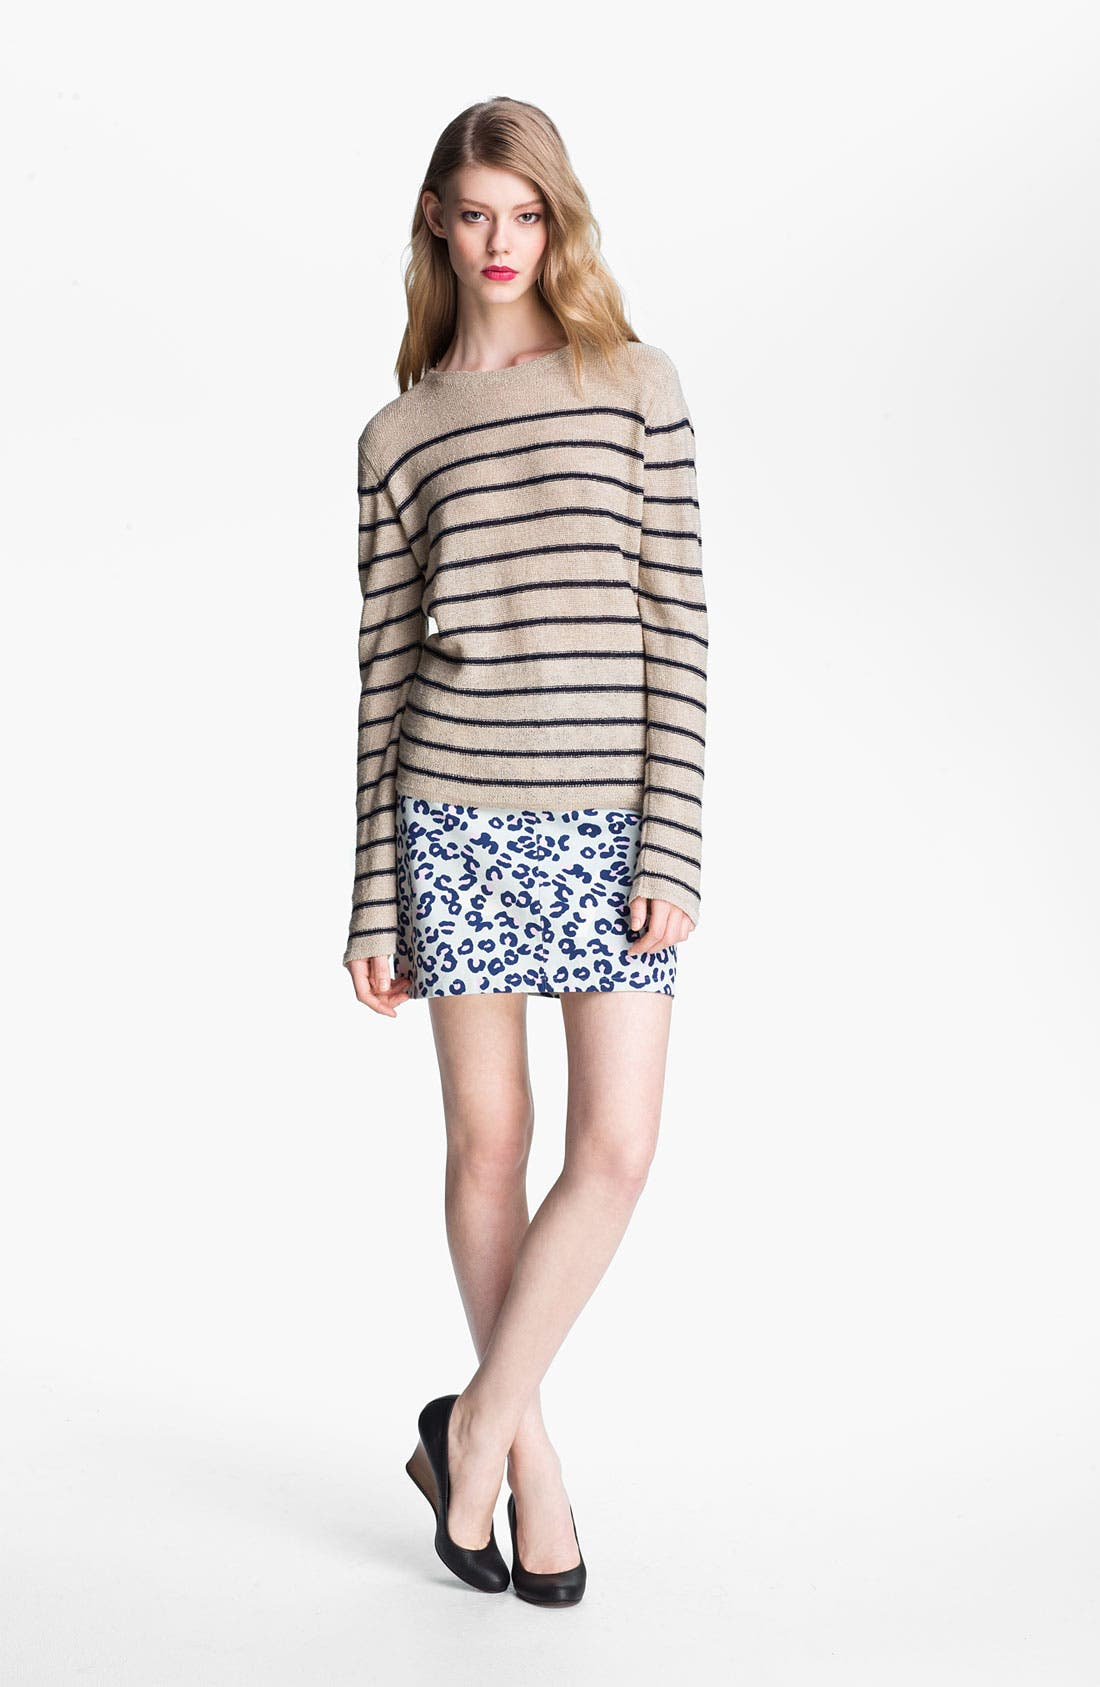 Alternate Image 1 Selected - A.P.C. Sweater & Miniskirt